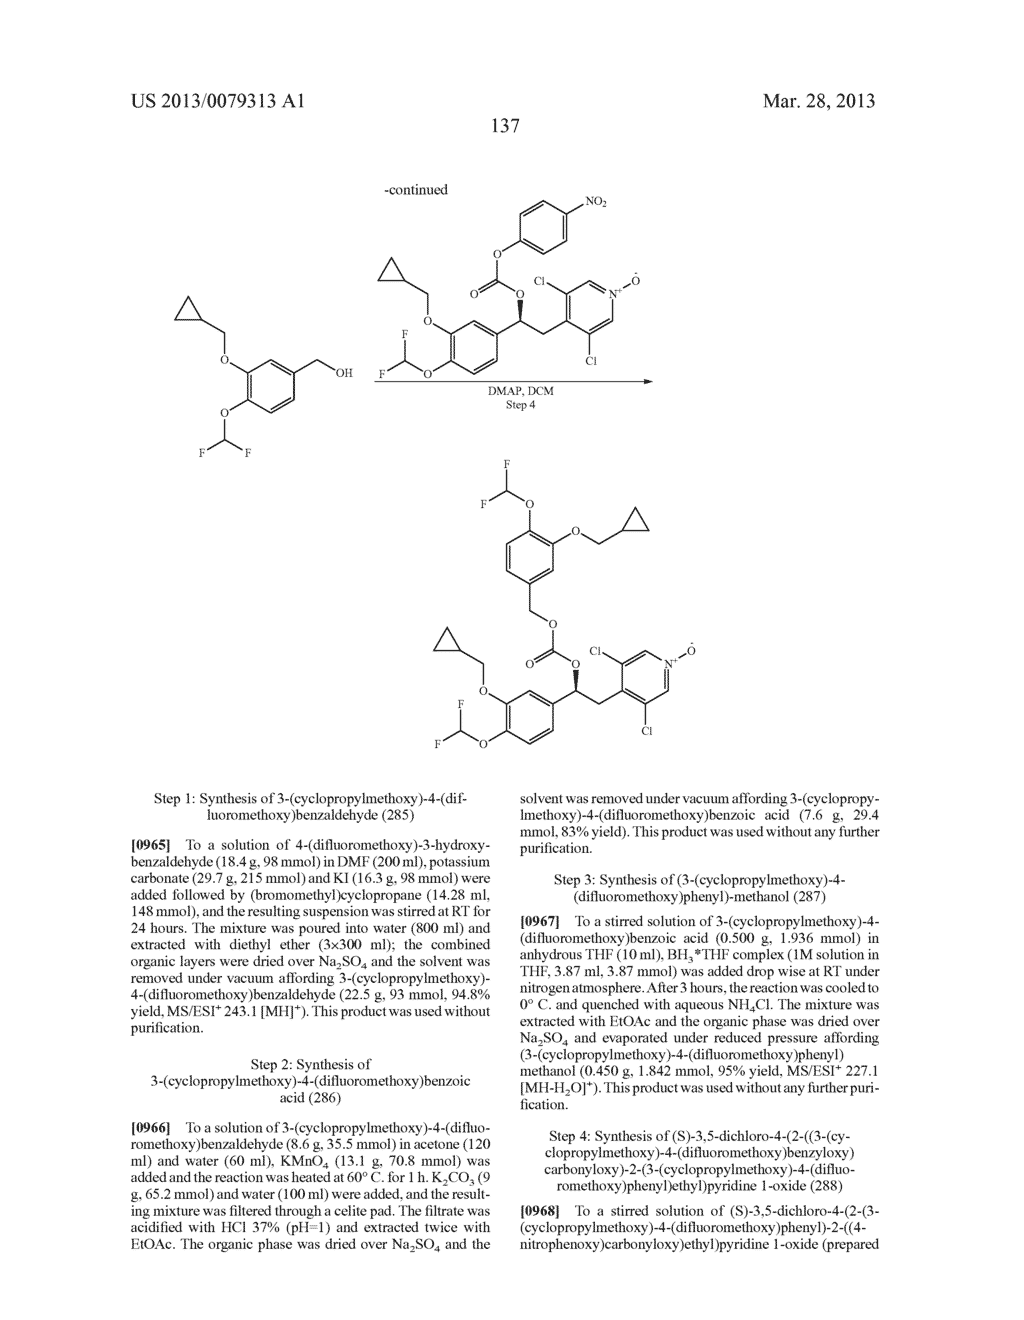 DERIVATIVES OF 1-PHENYL-2-PYRIDINYL ALKYL ALCOHOLS AS PHOSPHODIESTERASE     INHIBITORS - diagram, schematic, and image 138